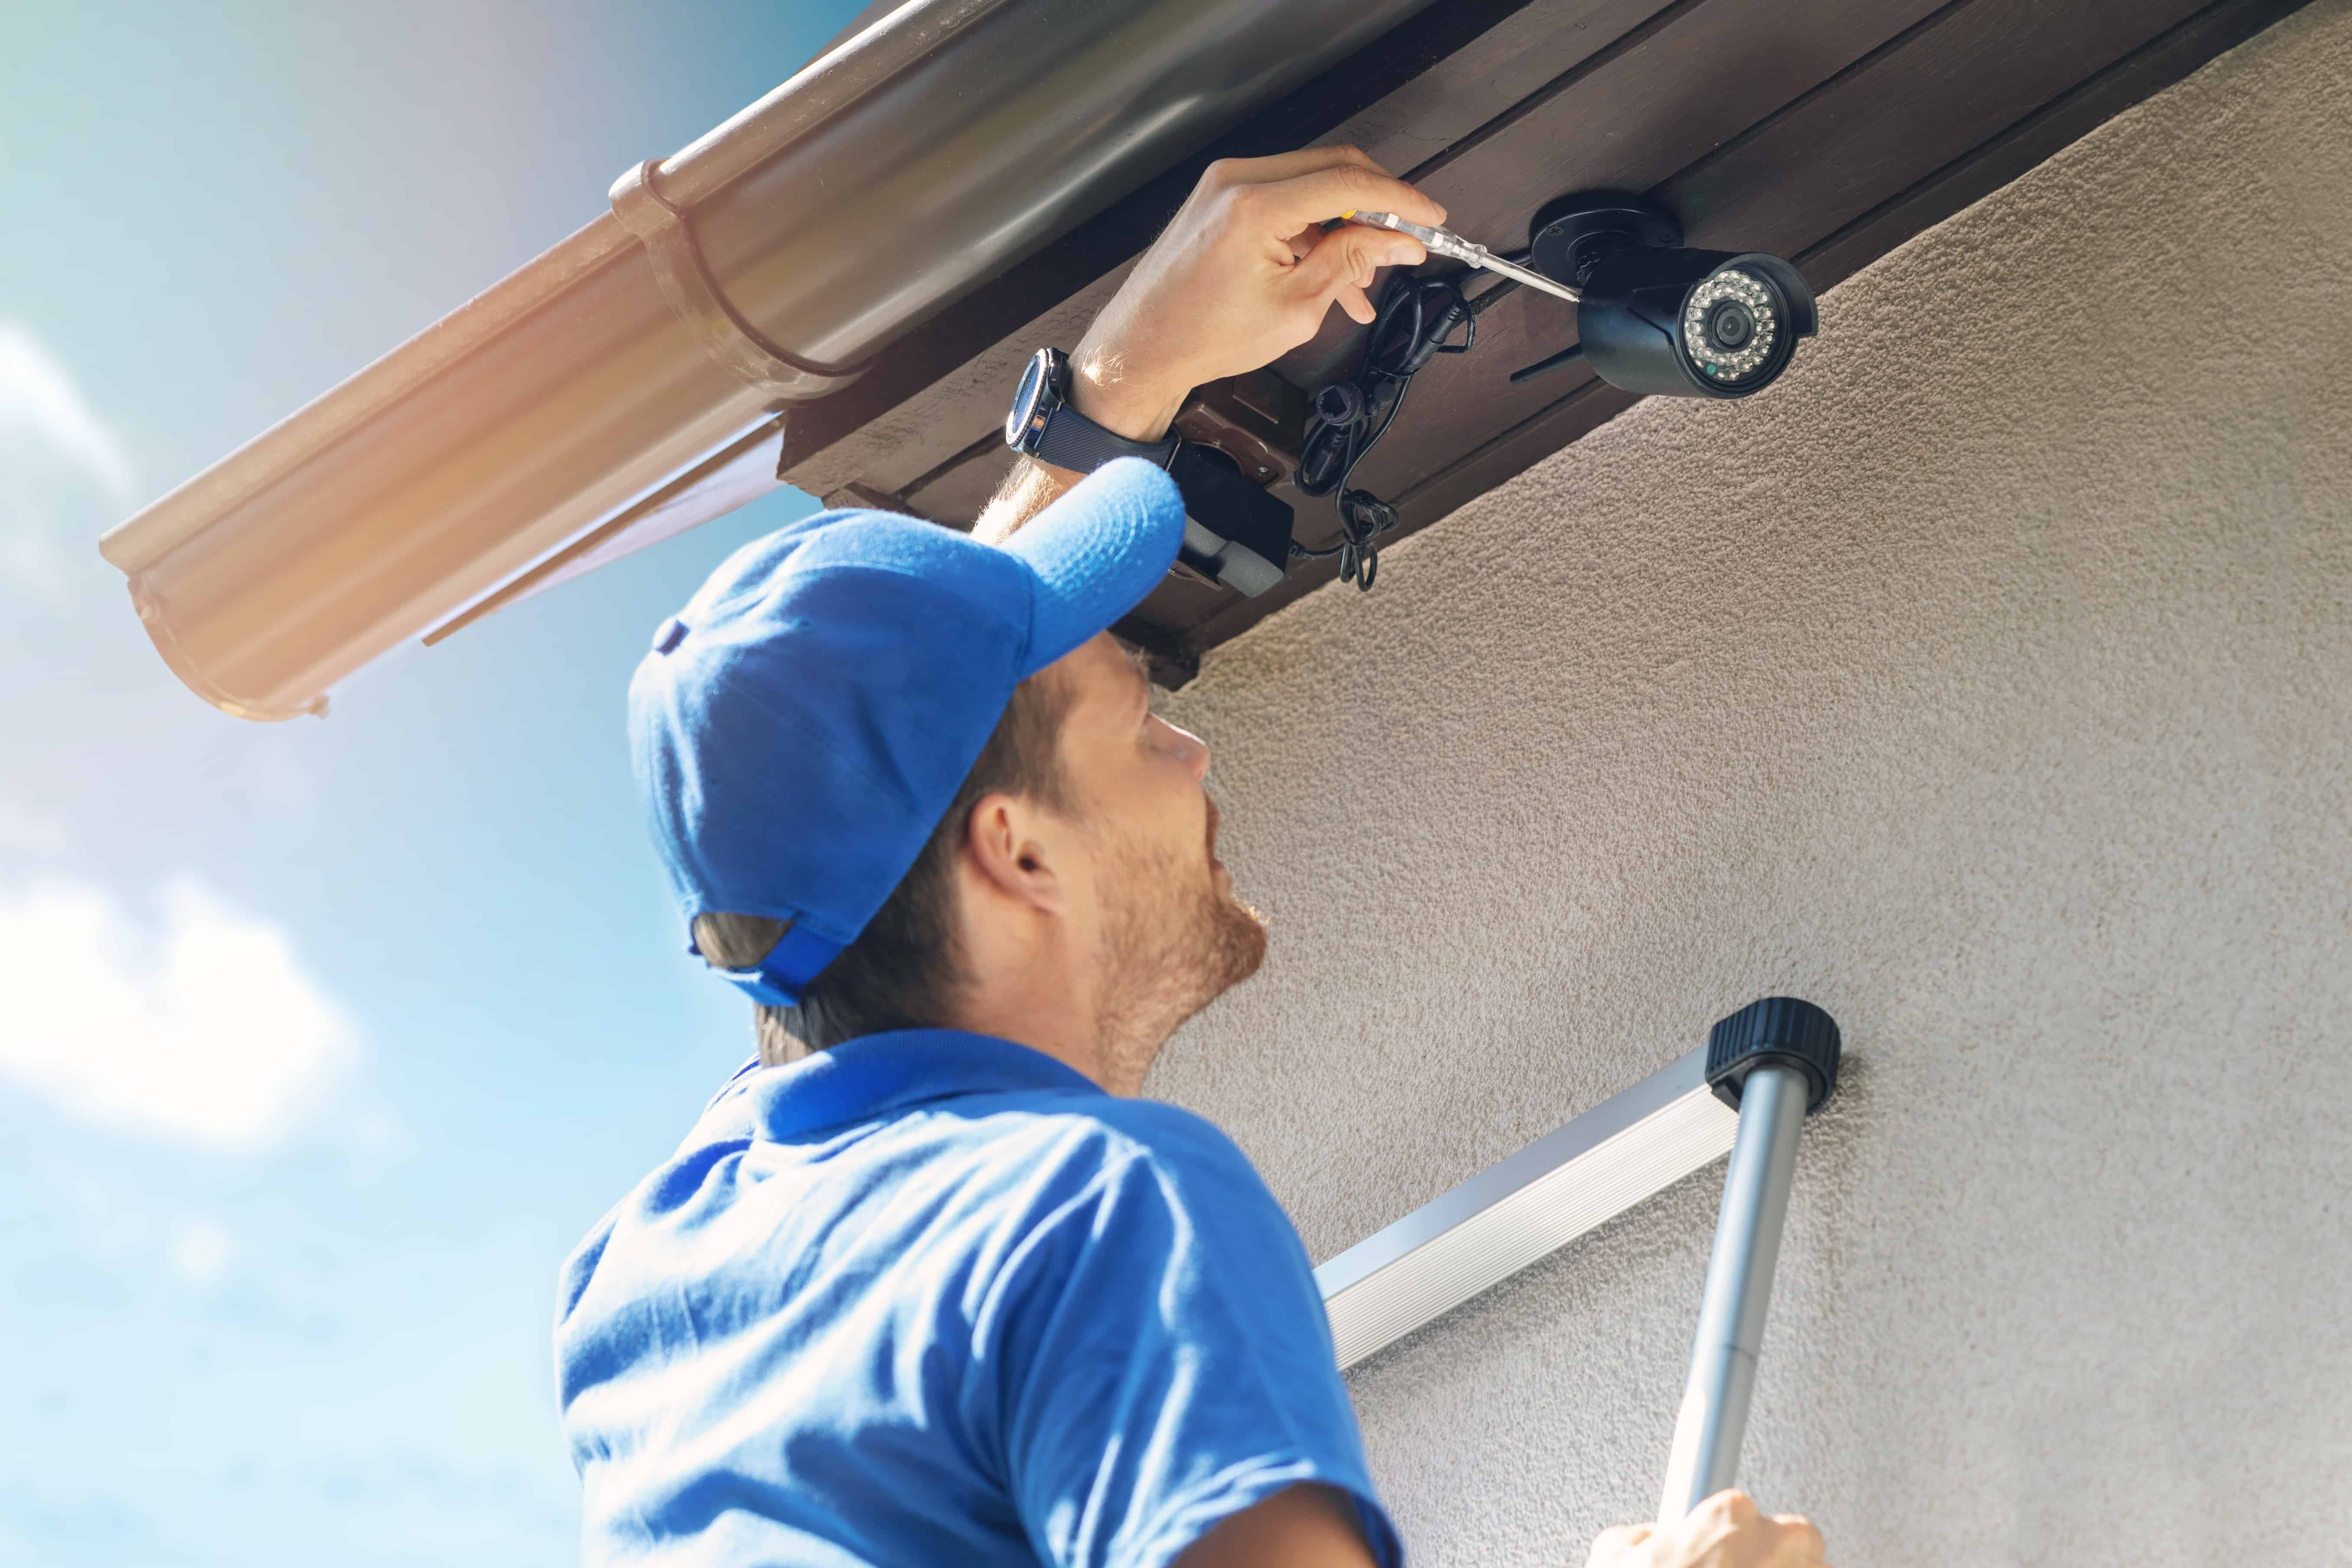 Why You Should Consider Video Cameras and Self-Monitored Home Security